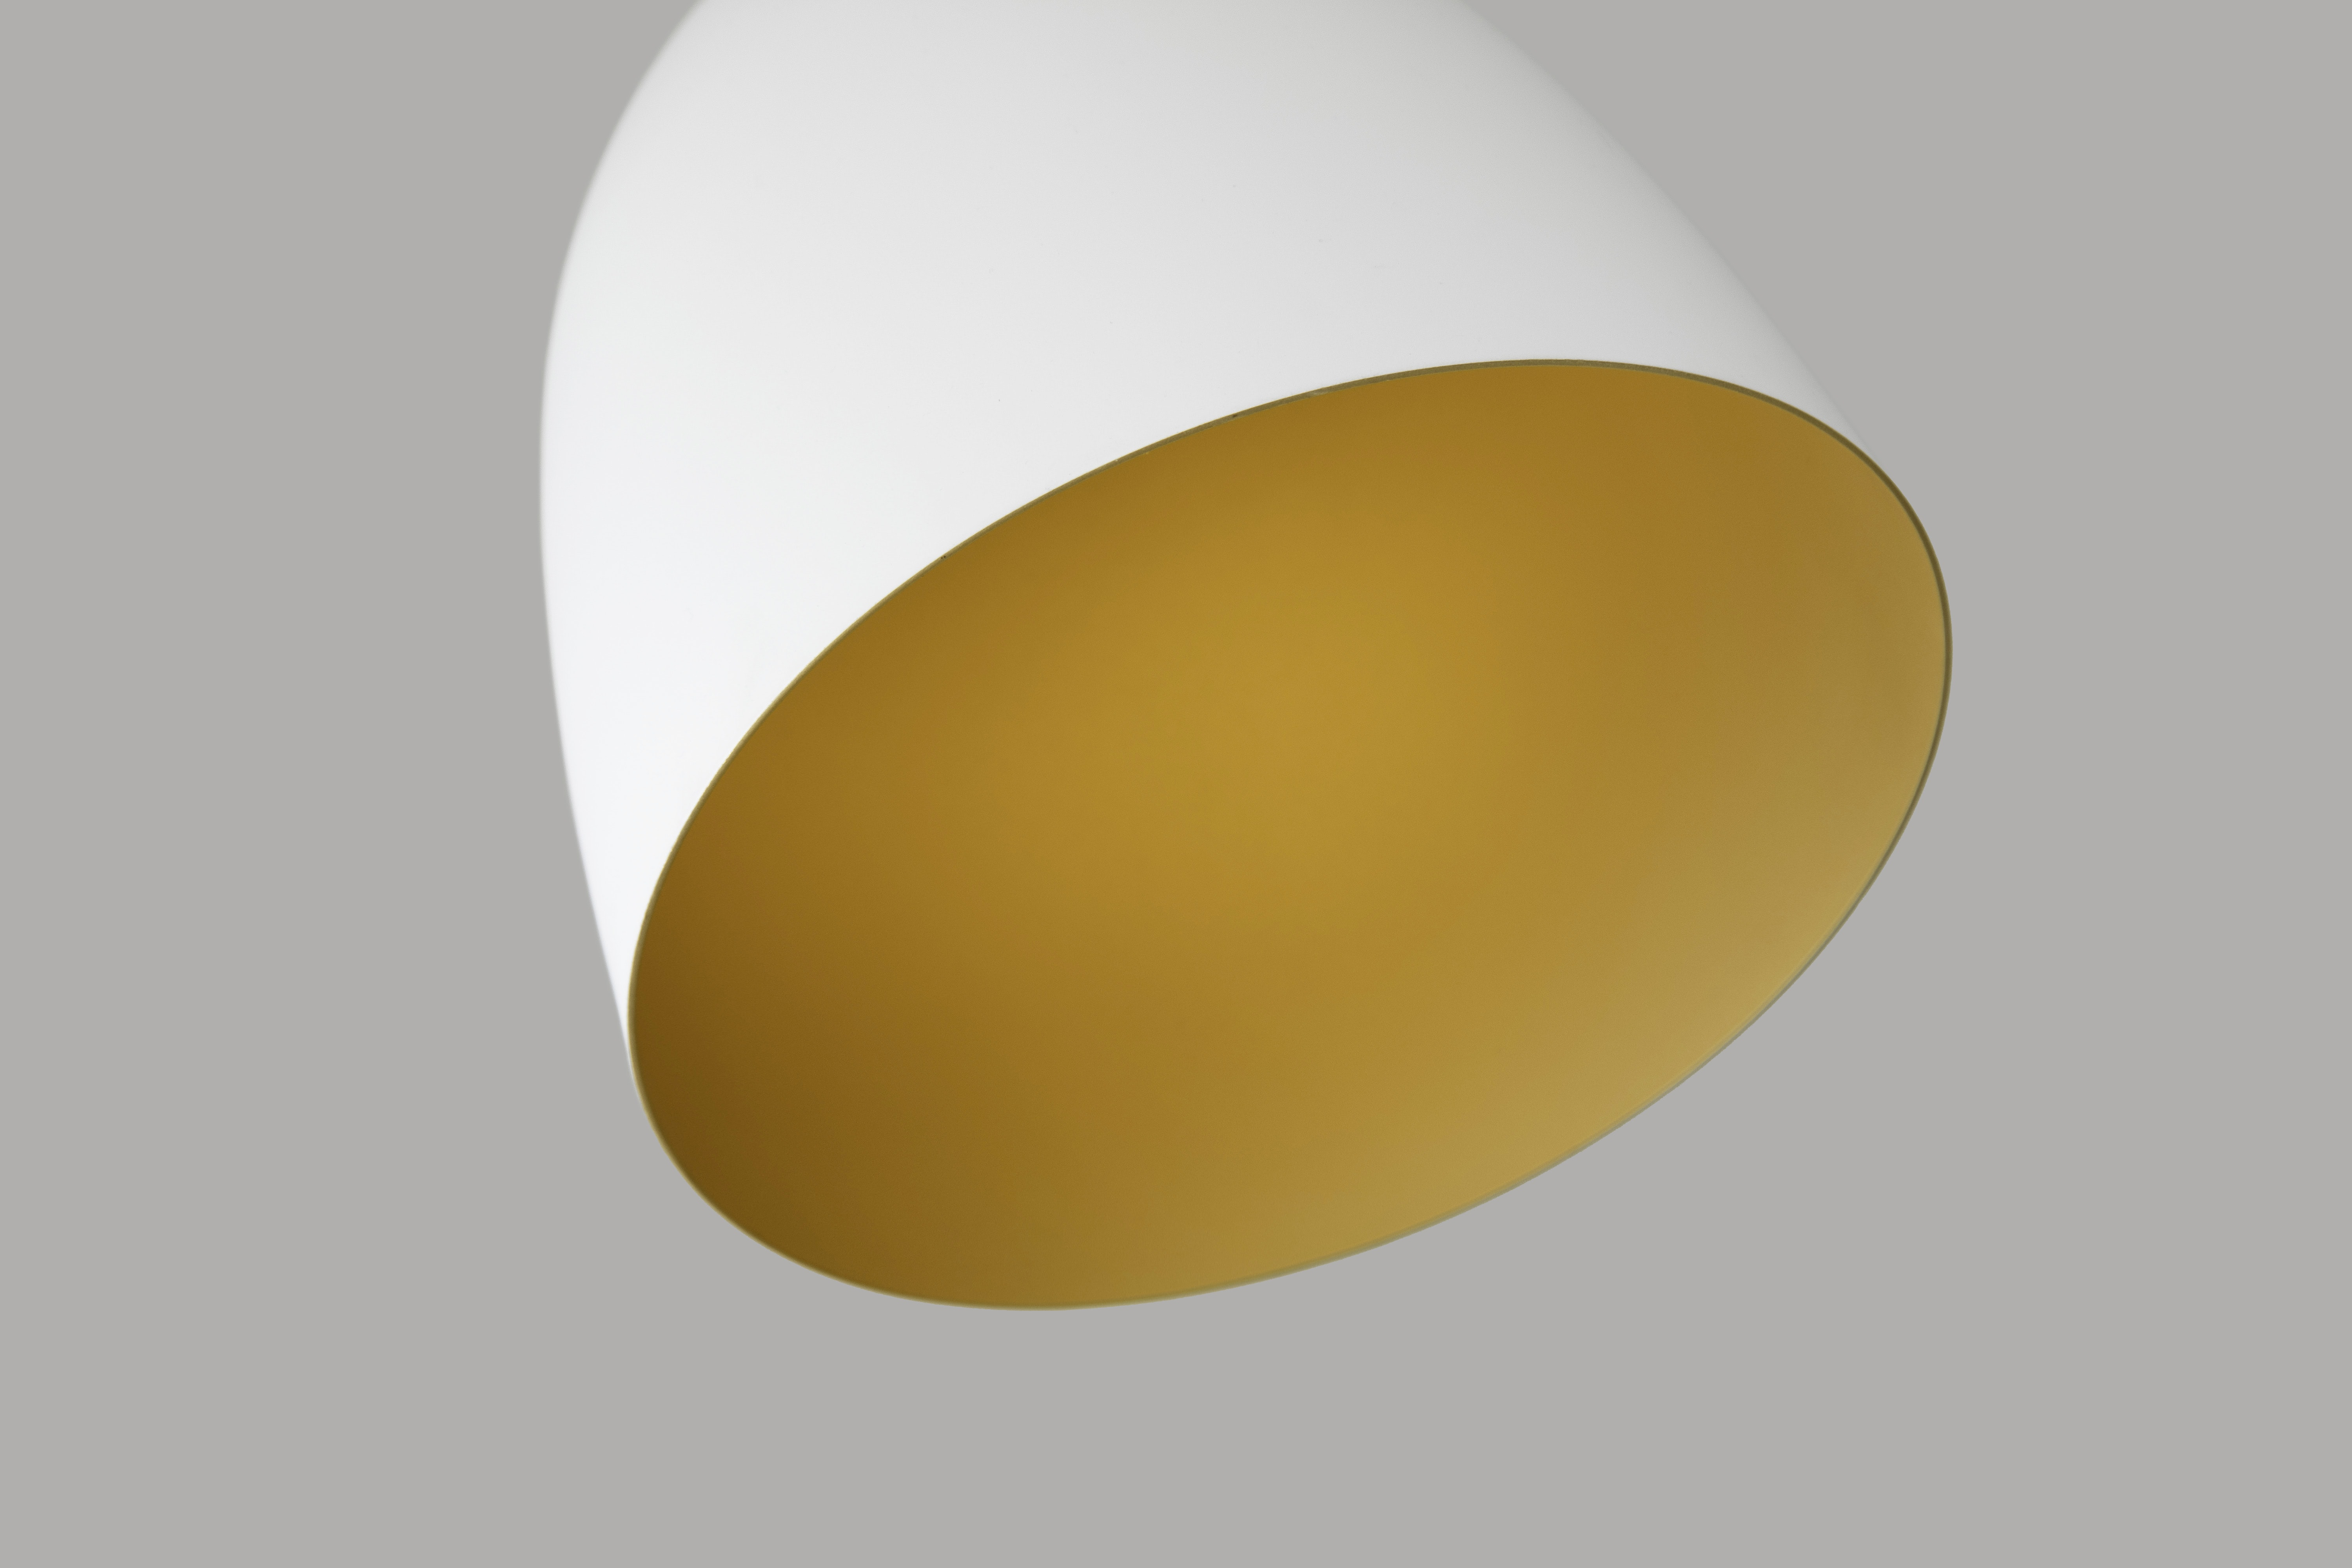 round white and yellow bowl illustration